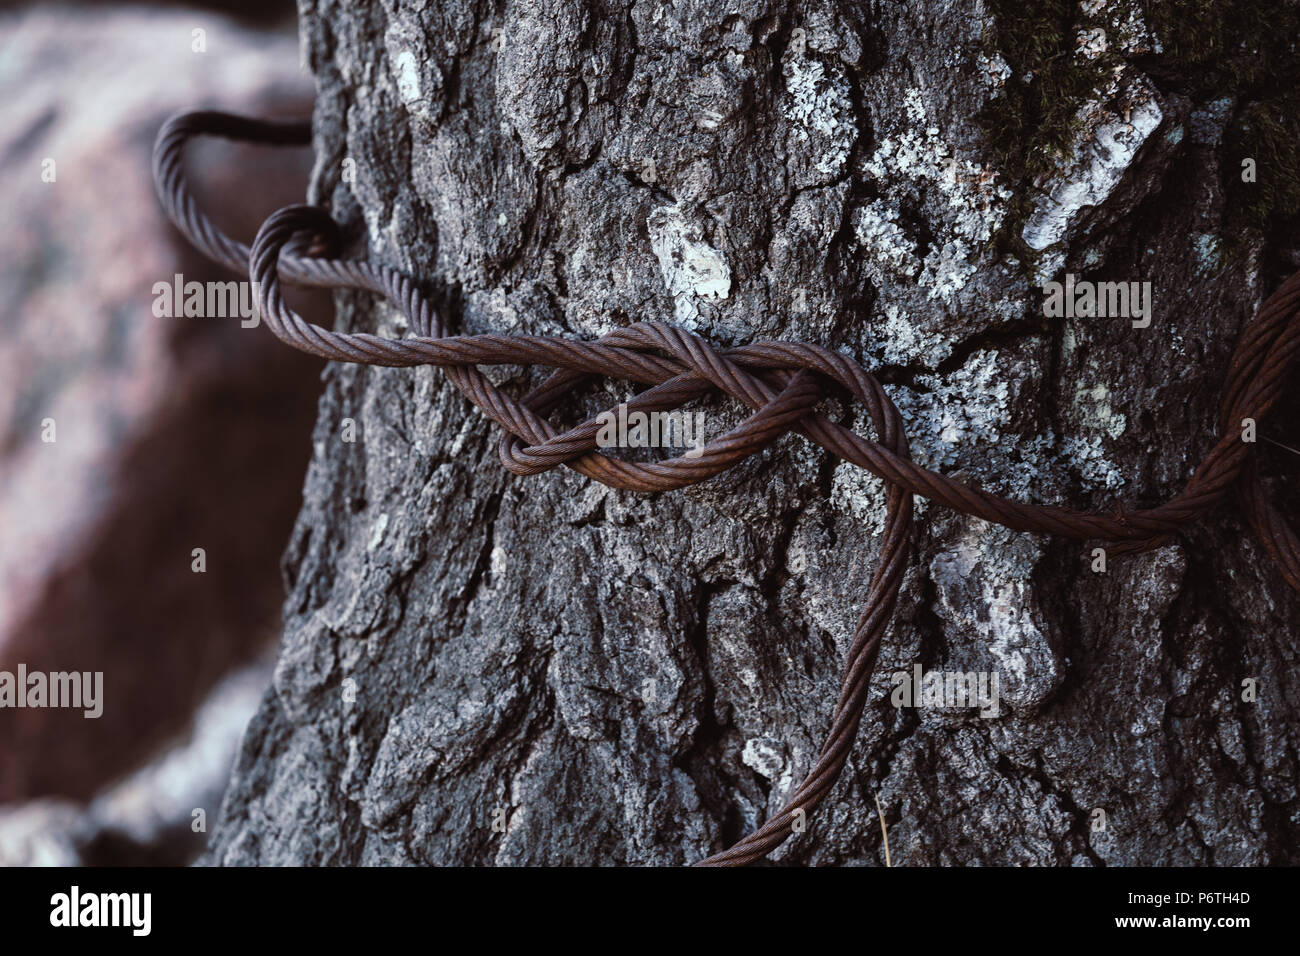 Rusty Steel Cable Stock Photos & Rusty Steel Cable Stock Images - Alamy